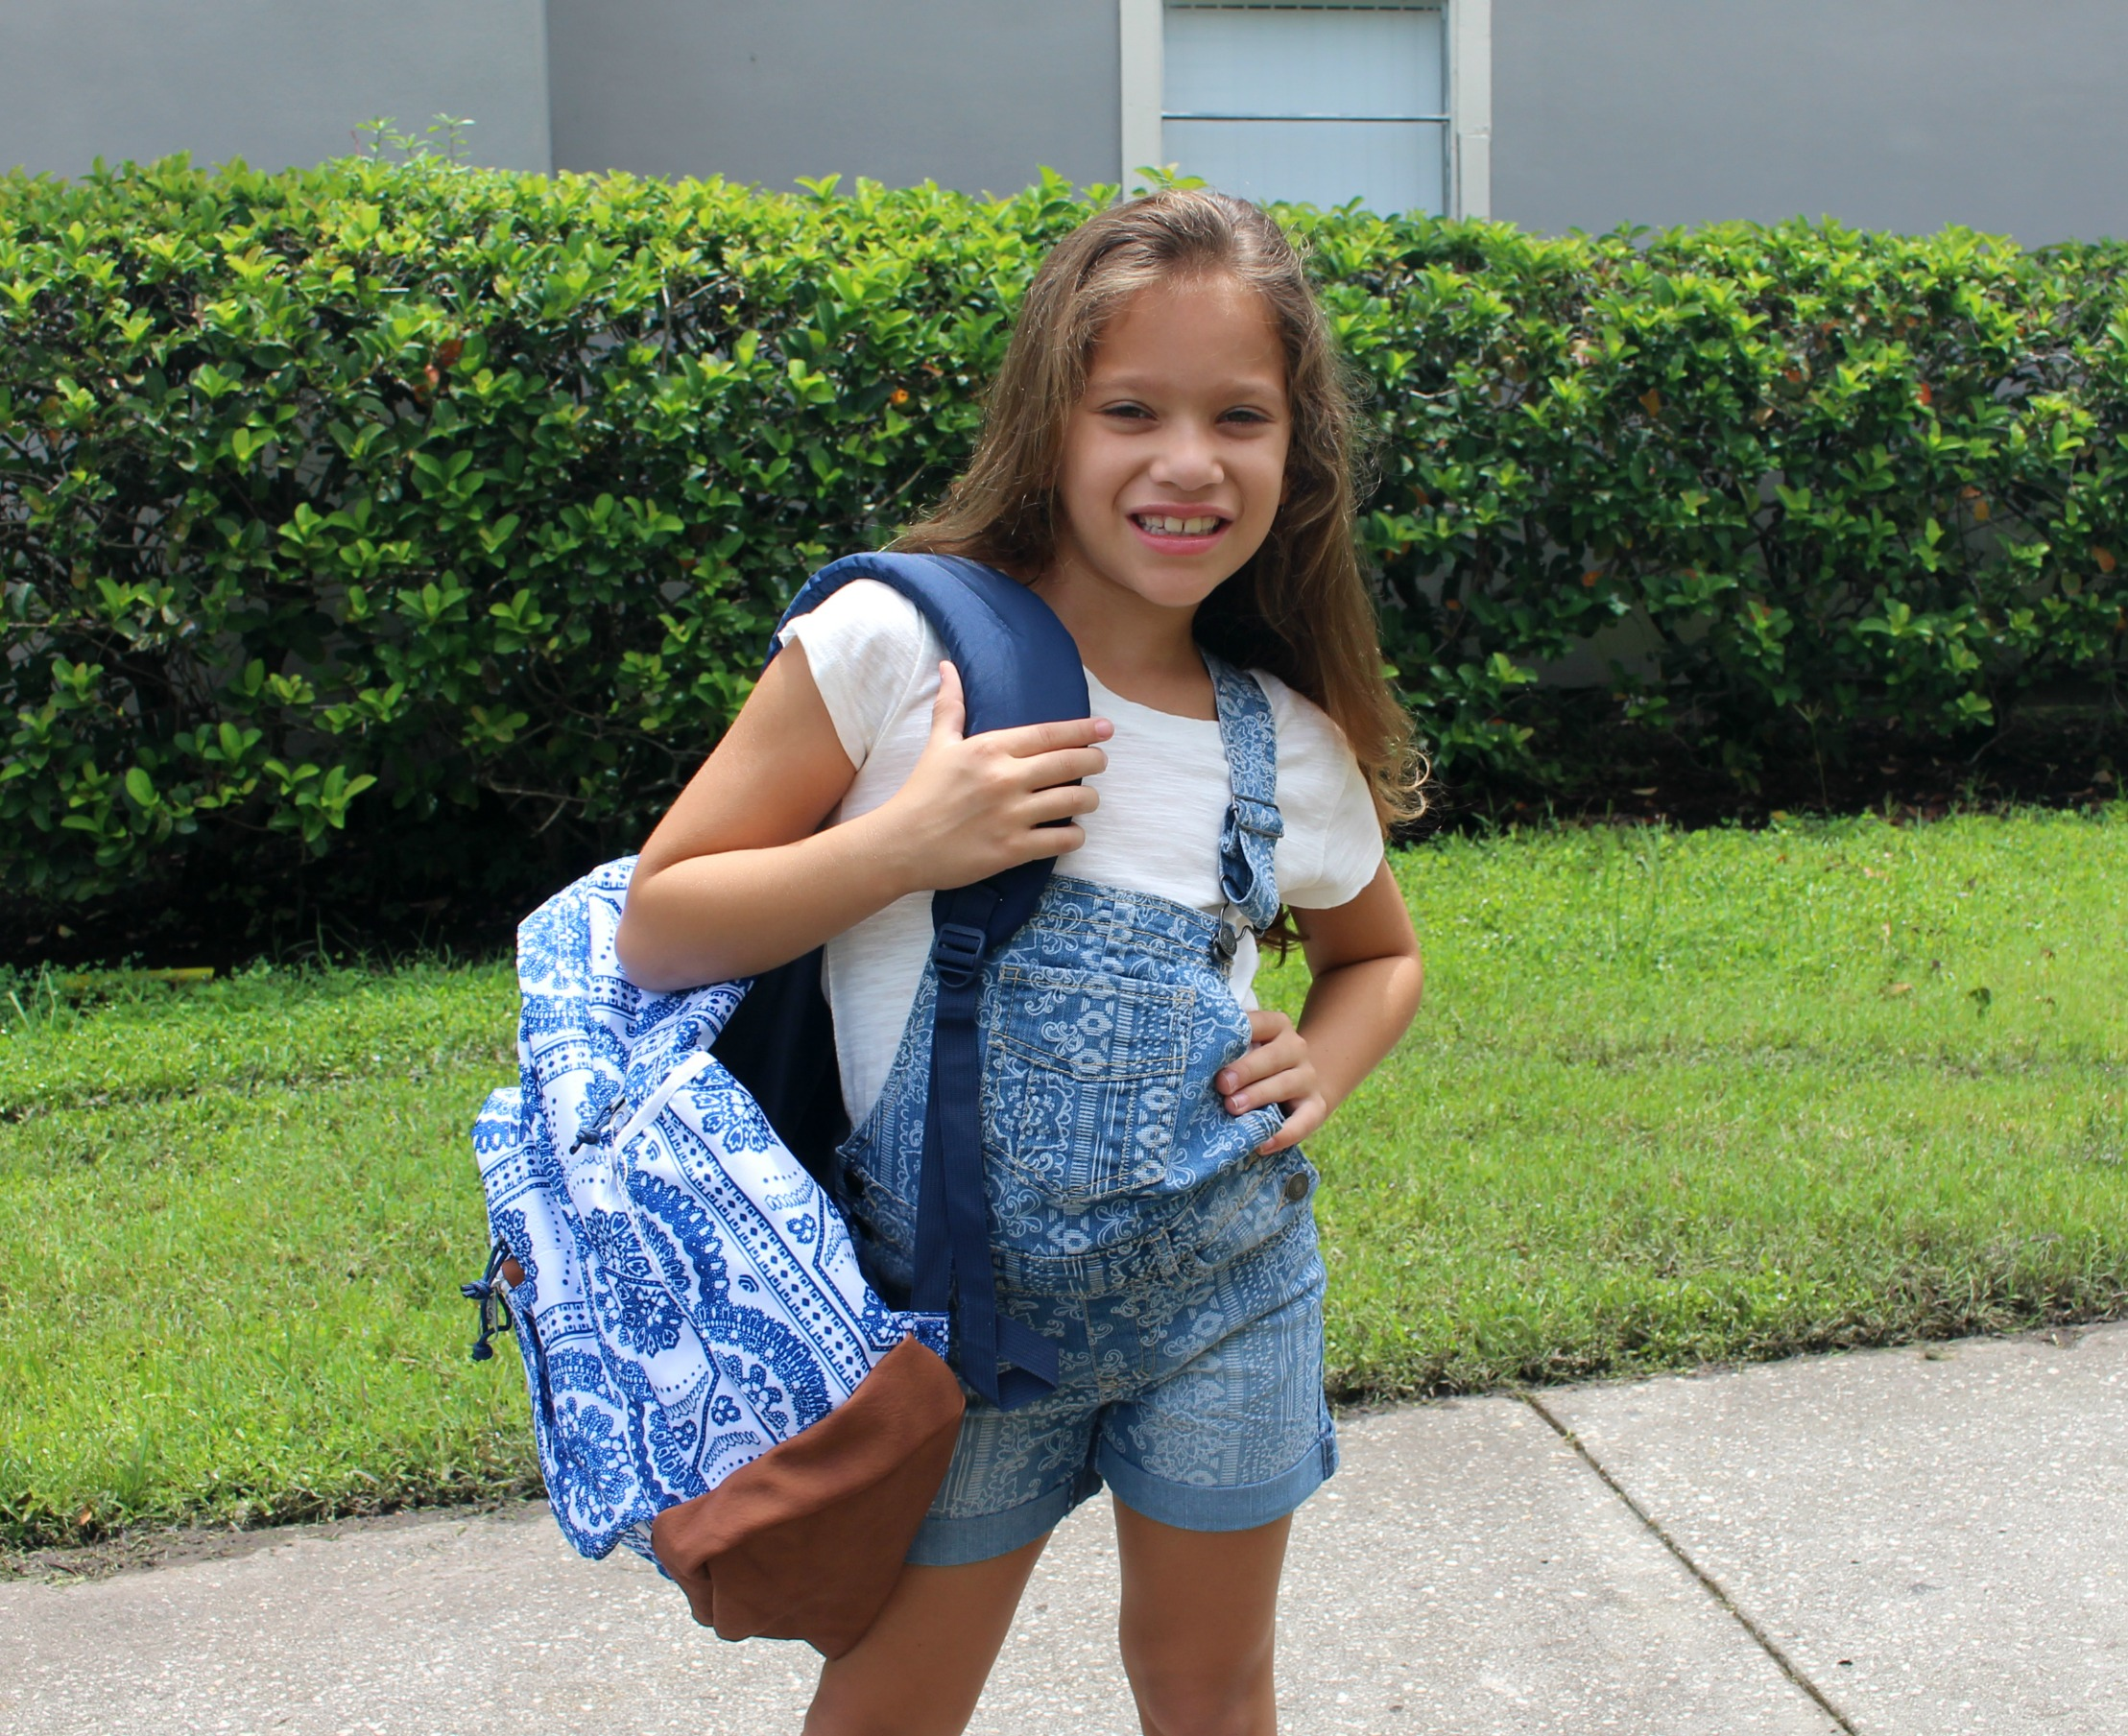 Gear-Up-With-Sears-first-day-of-school-girls